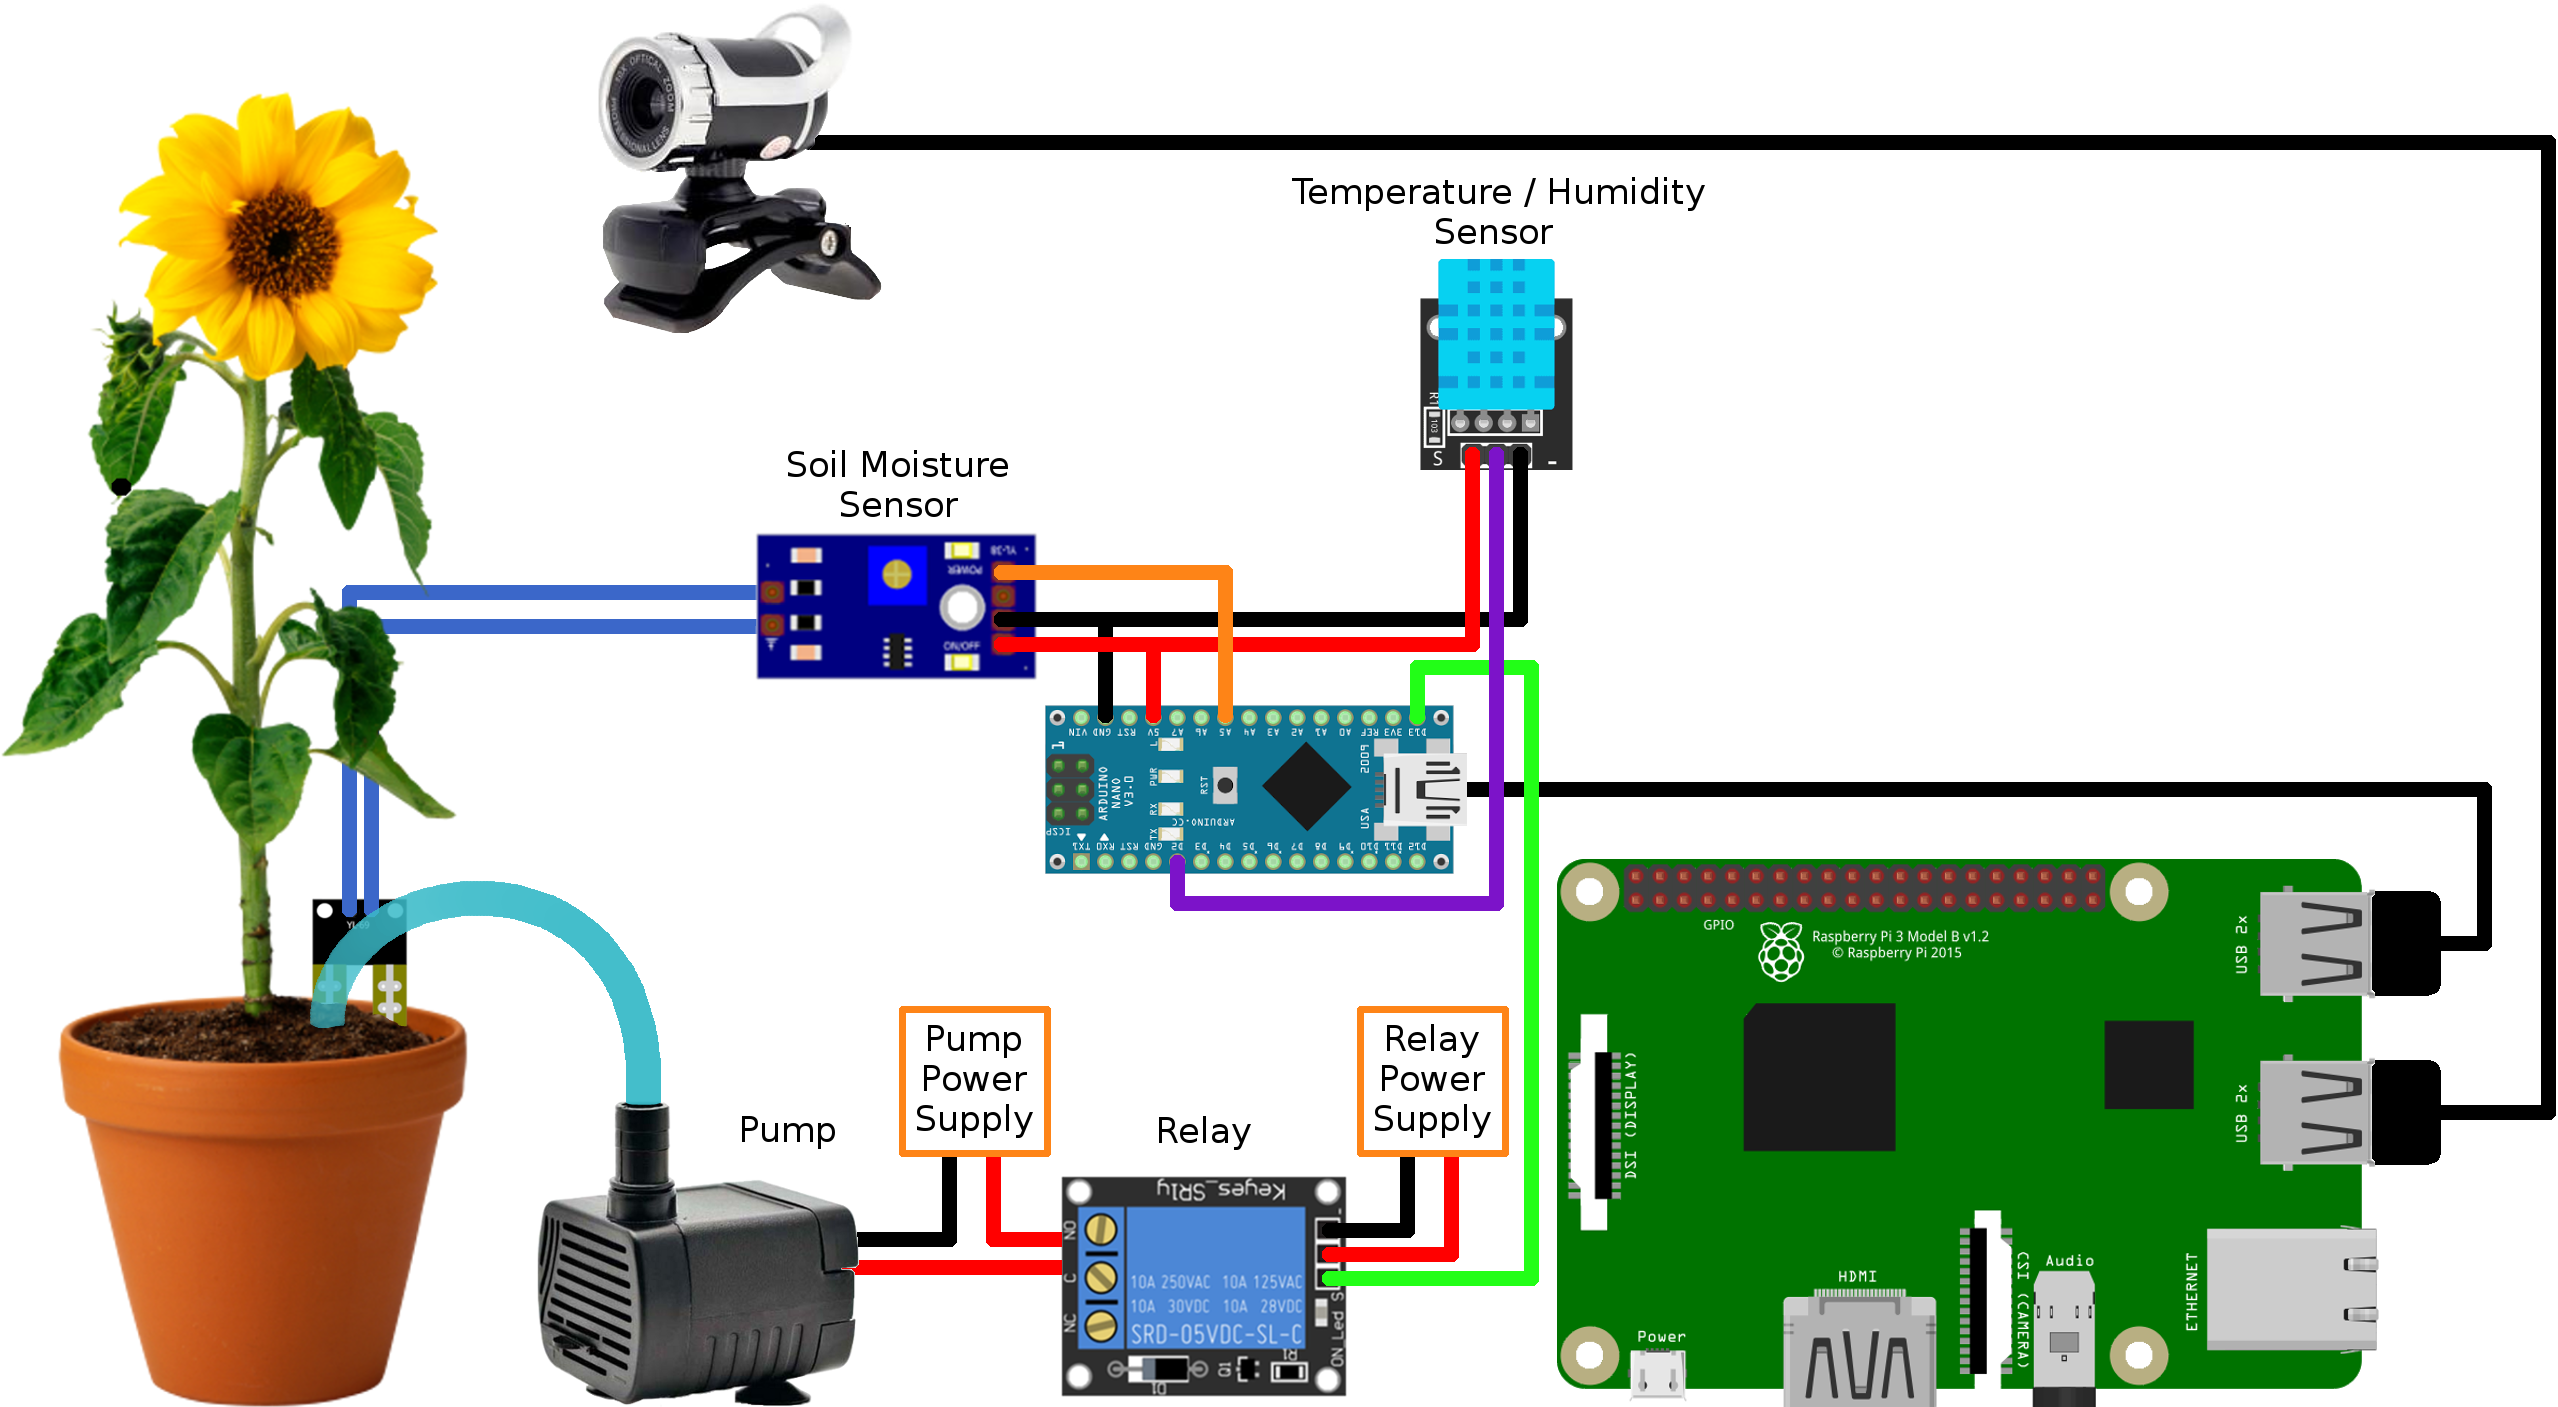 Rpi Plant Big furthermore Cpx P further Fex Swegopinez Rect together with Frontdoor besides Ariag Eth Wiring. on usb wiring diagram wires